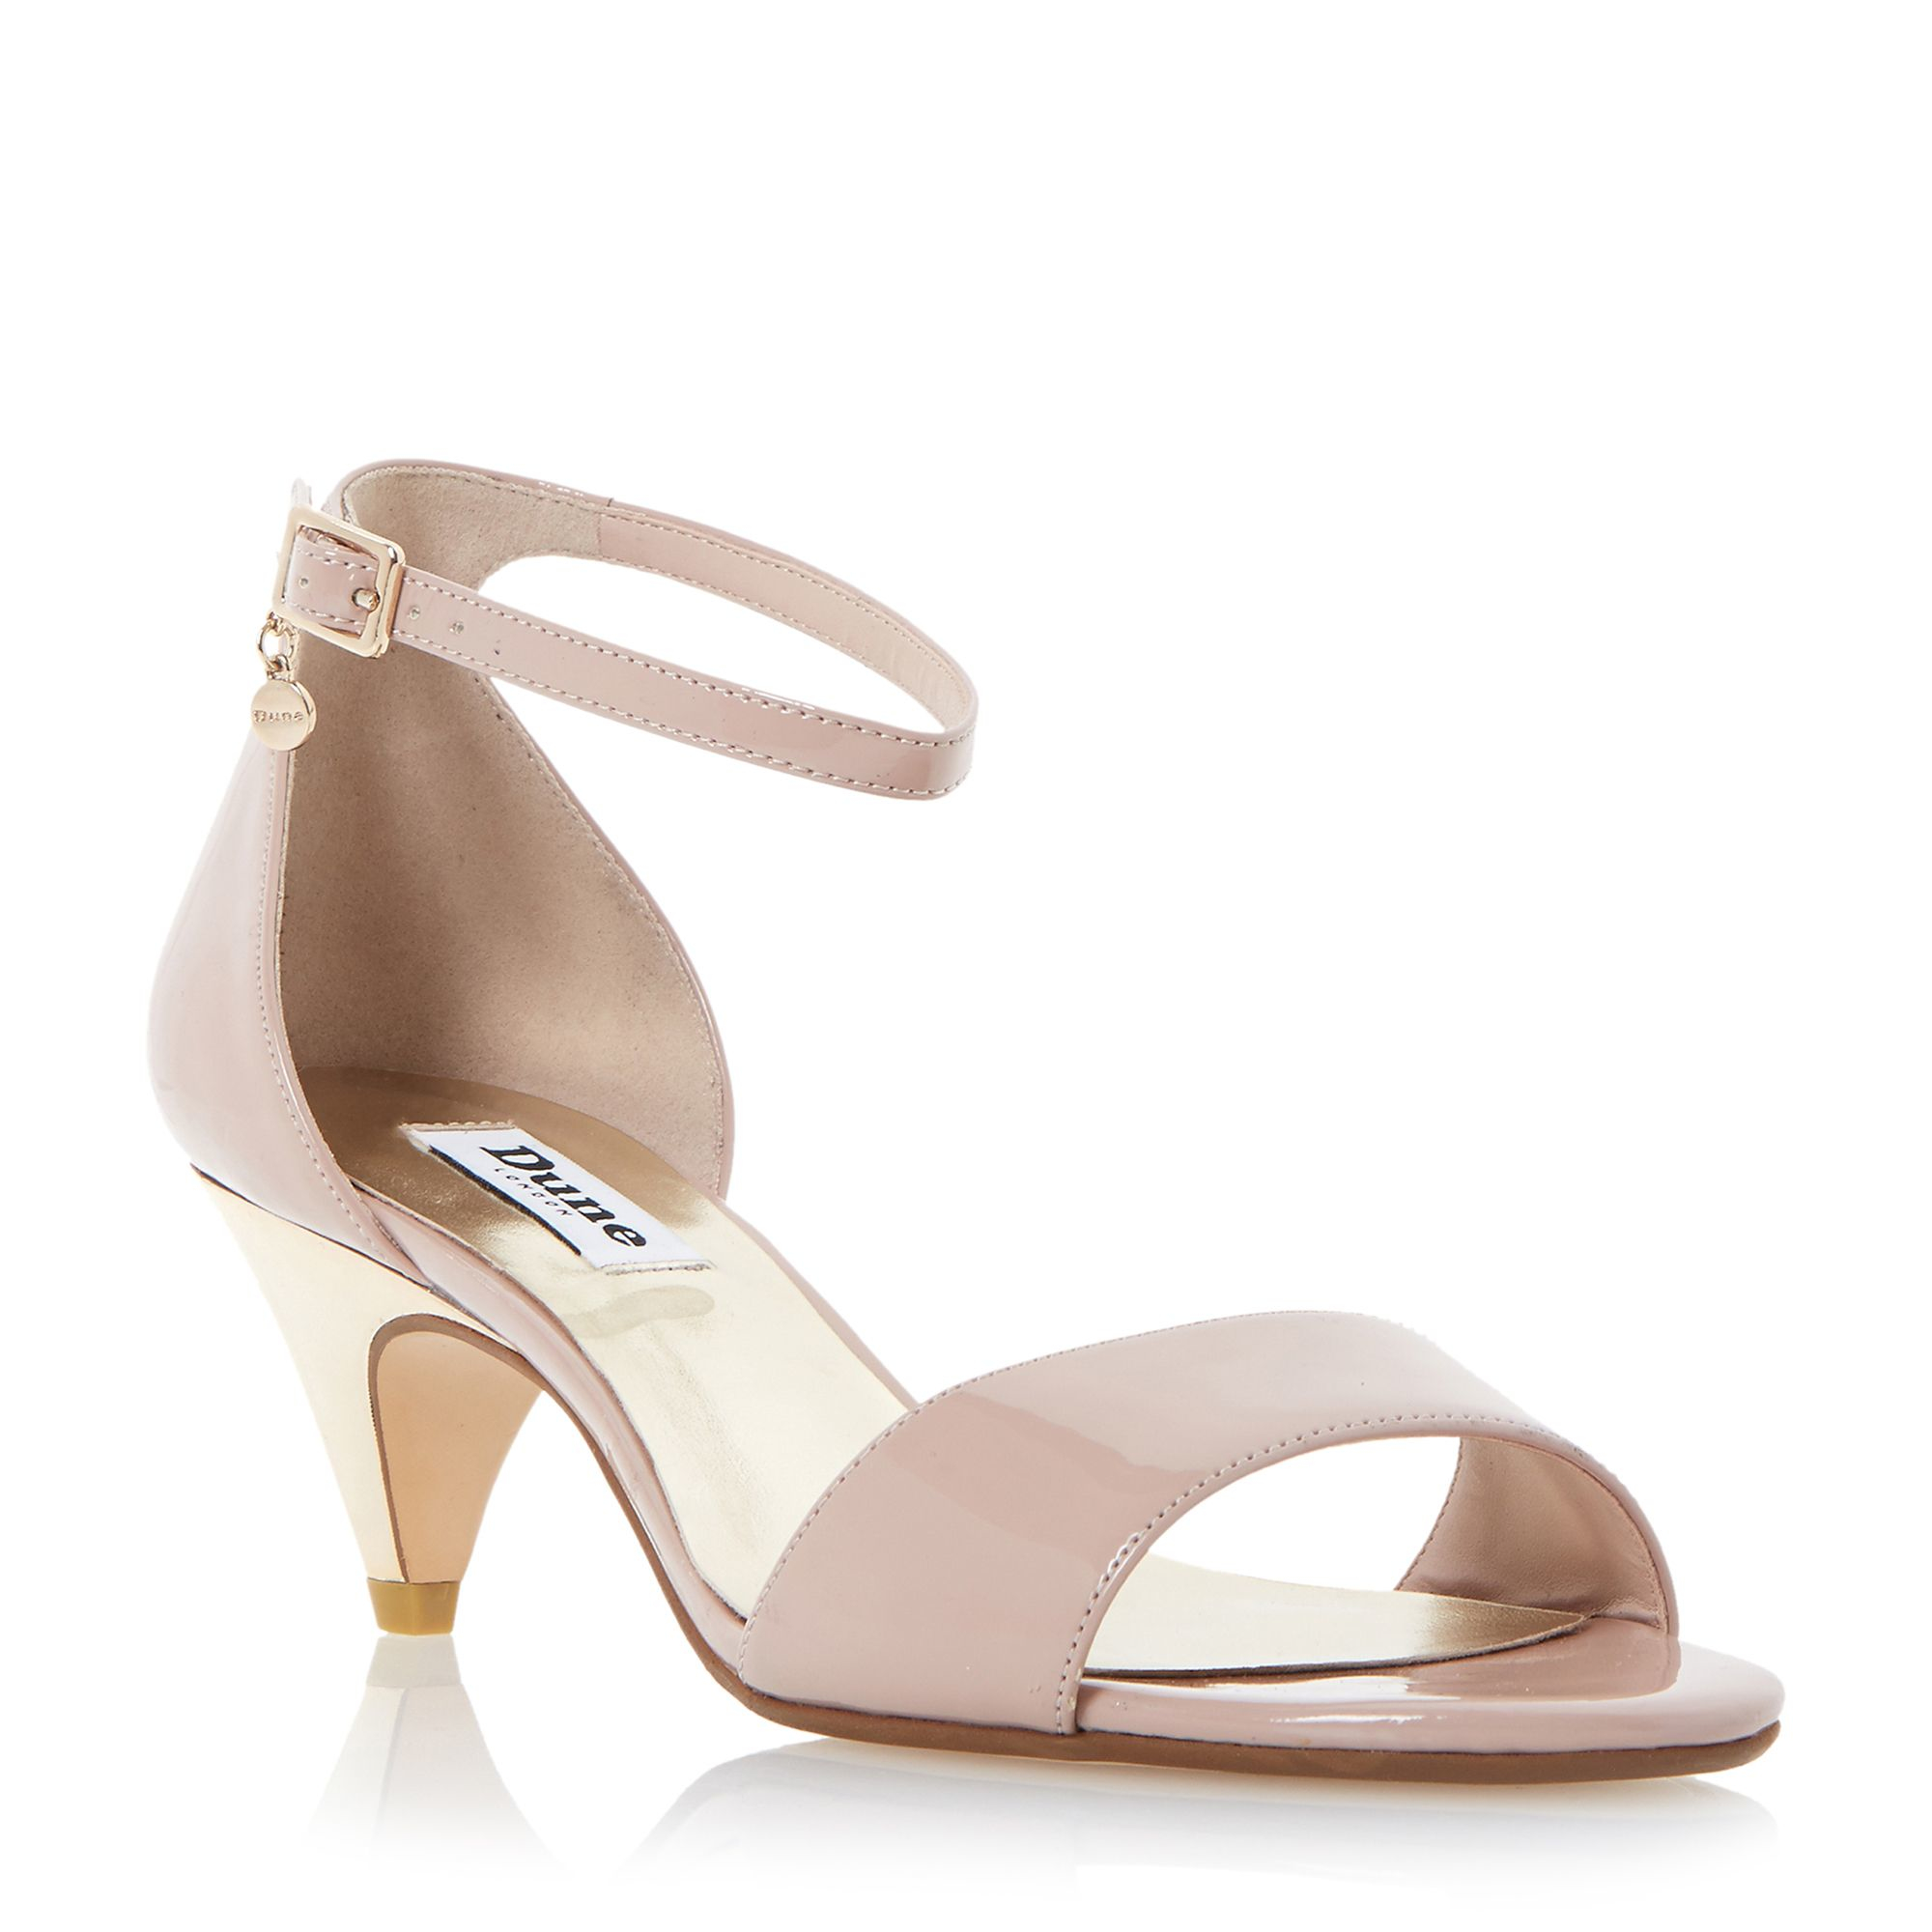 dune marina two part kitten heel sandals in pink blush lyst. Black Bedroom Furniture Sets. Home Design Ideas